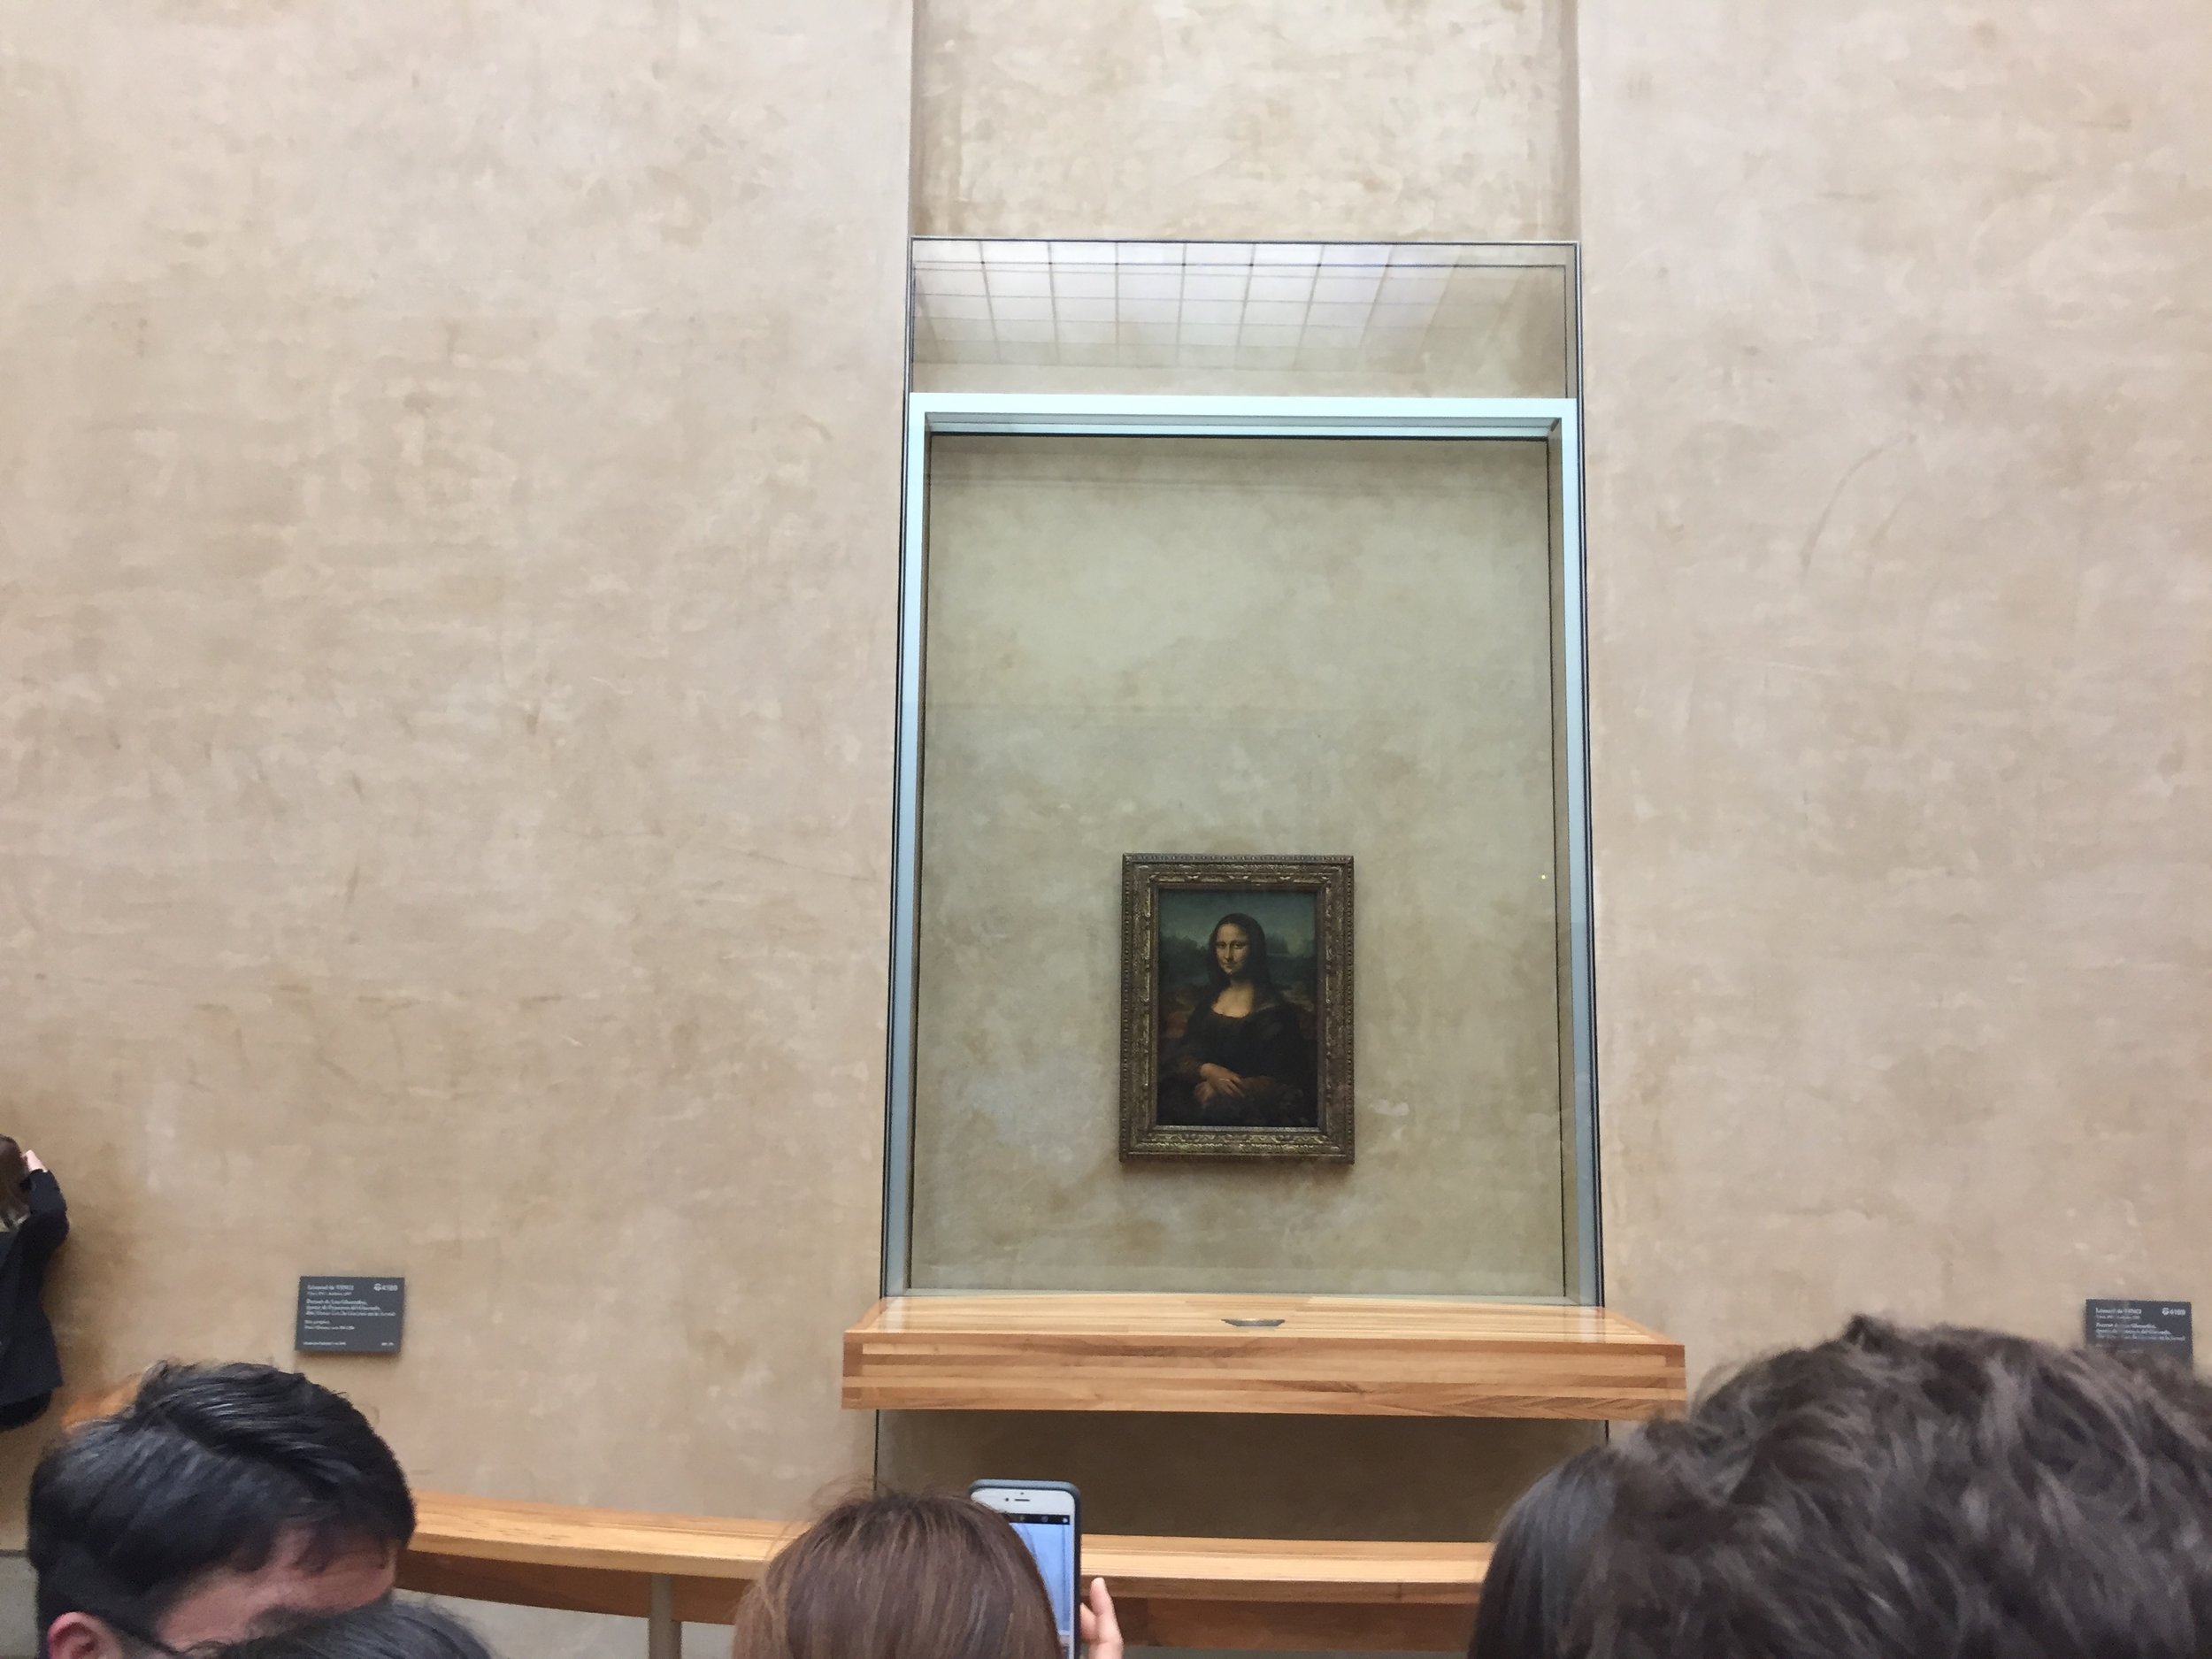 omg the Mona Lisa! So much hype for just a smirking girl if I may say so myself.